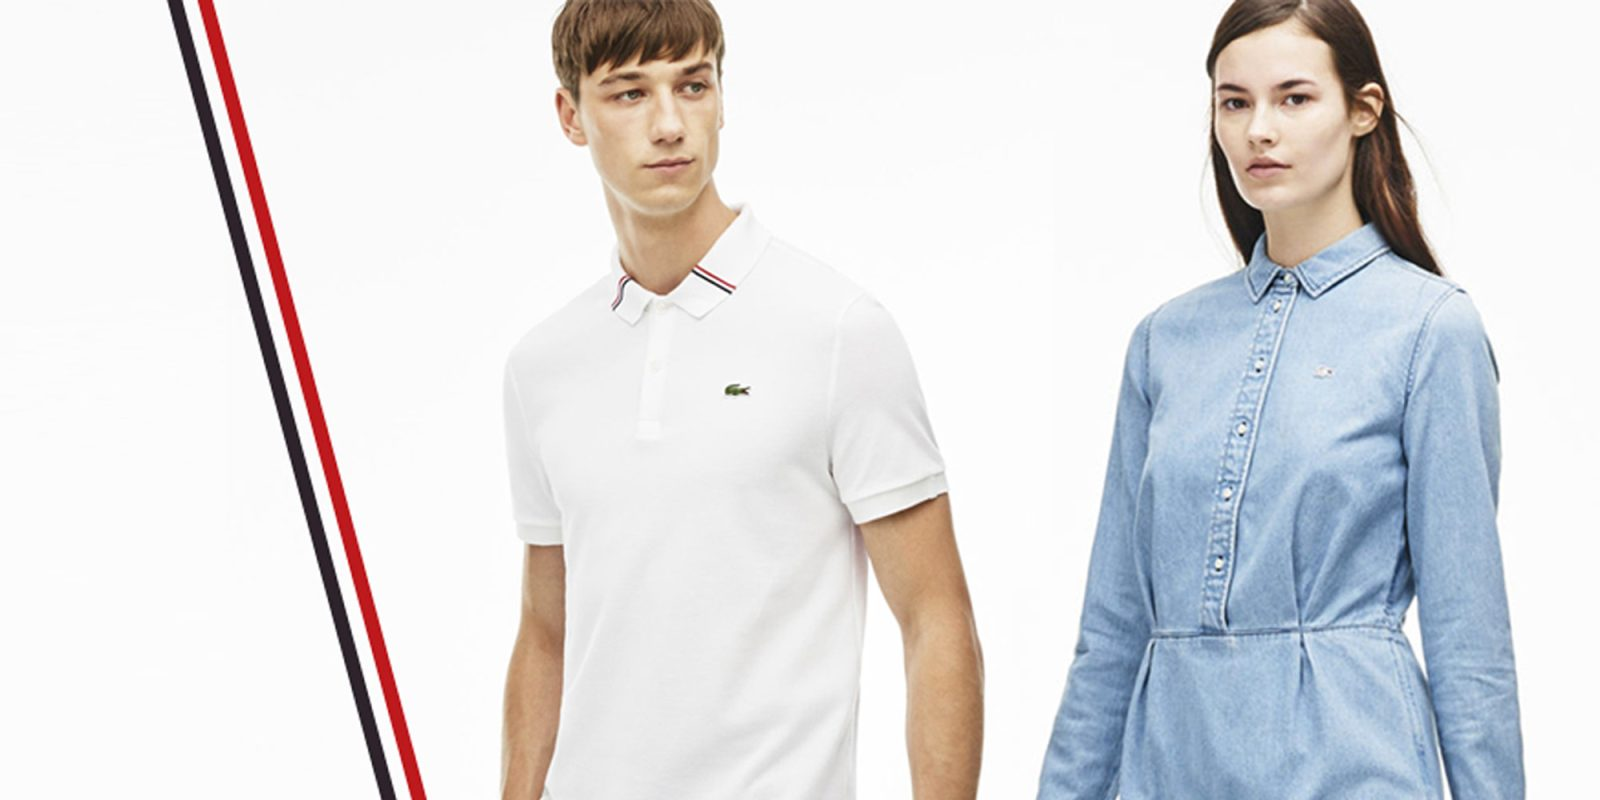 b286cb293c Lacoste Semi-Annual Sale takes up to 50% off apparel for men and ...